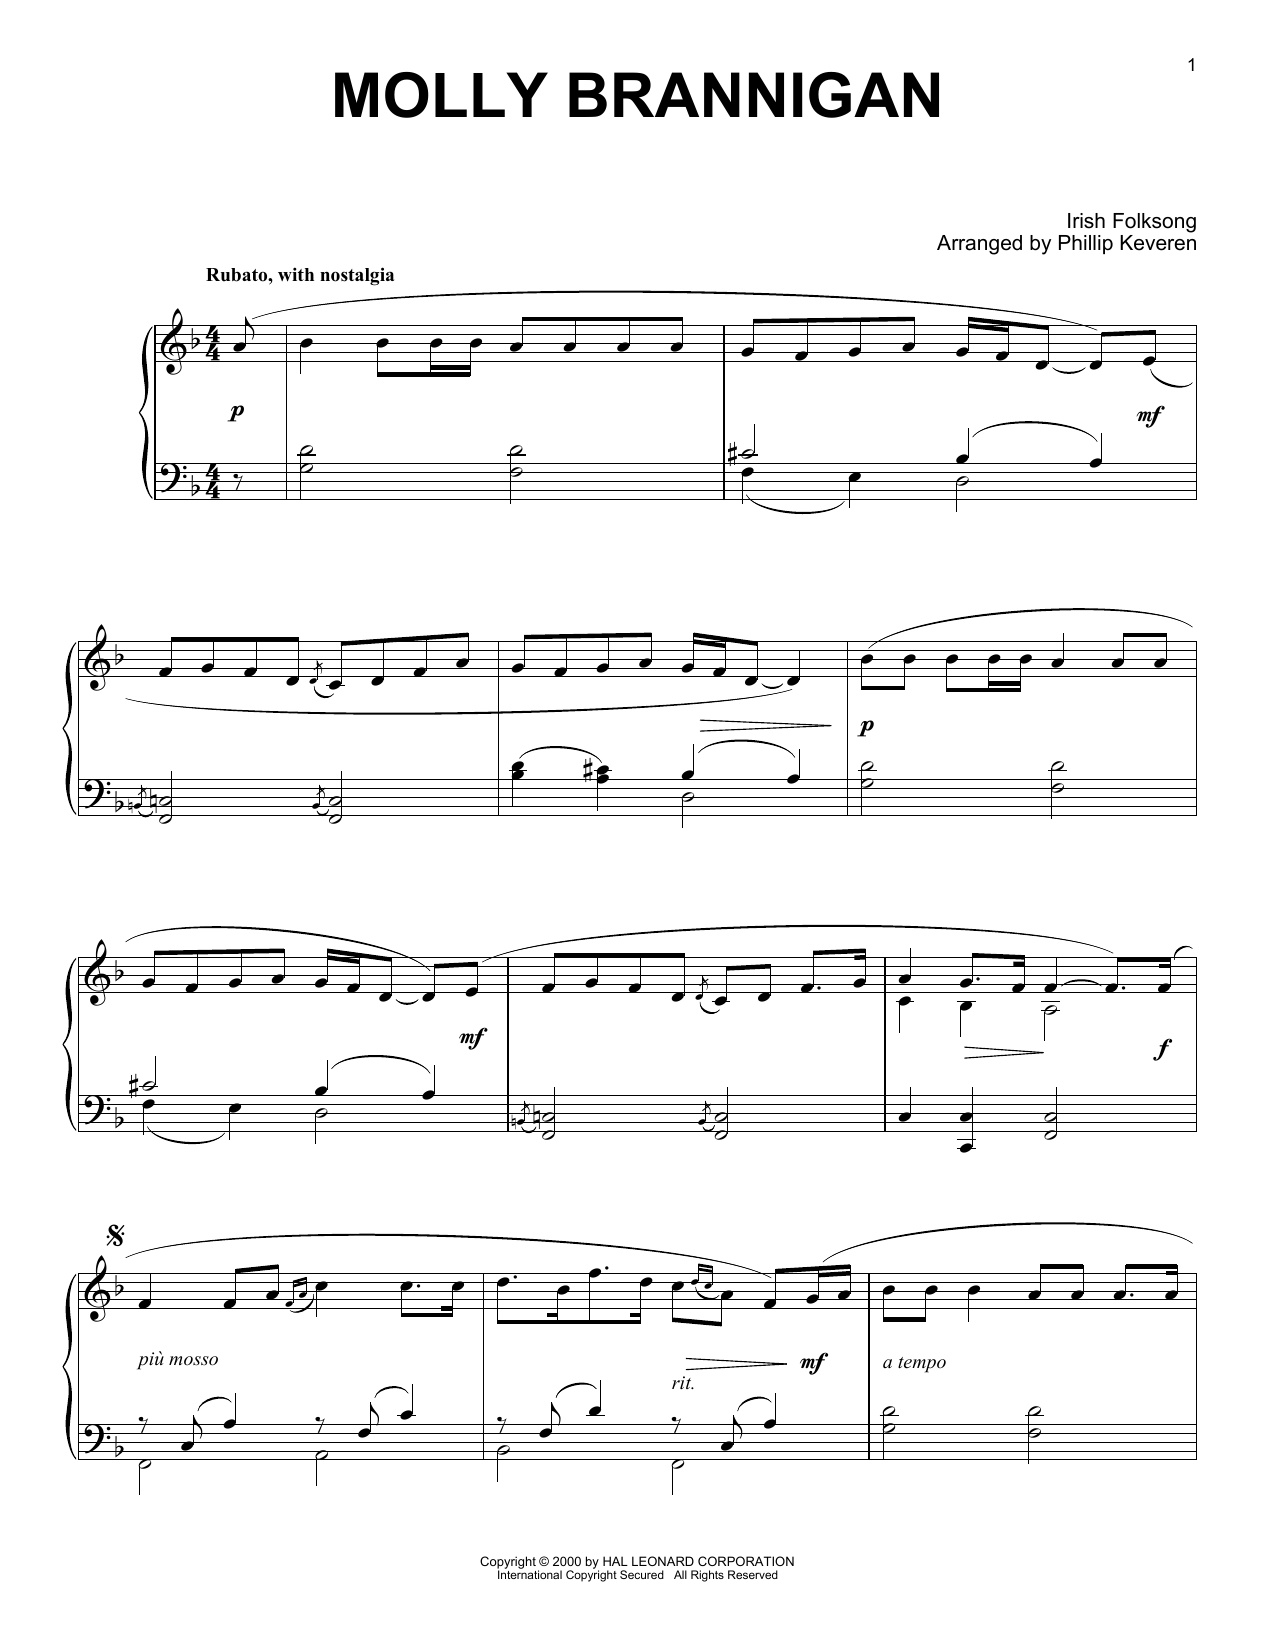 Irish Folksong Molly Brannigan (arr. Phillip Keveren) sheet music notes and chords. Download Printable PDF.